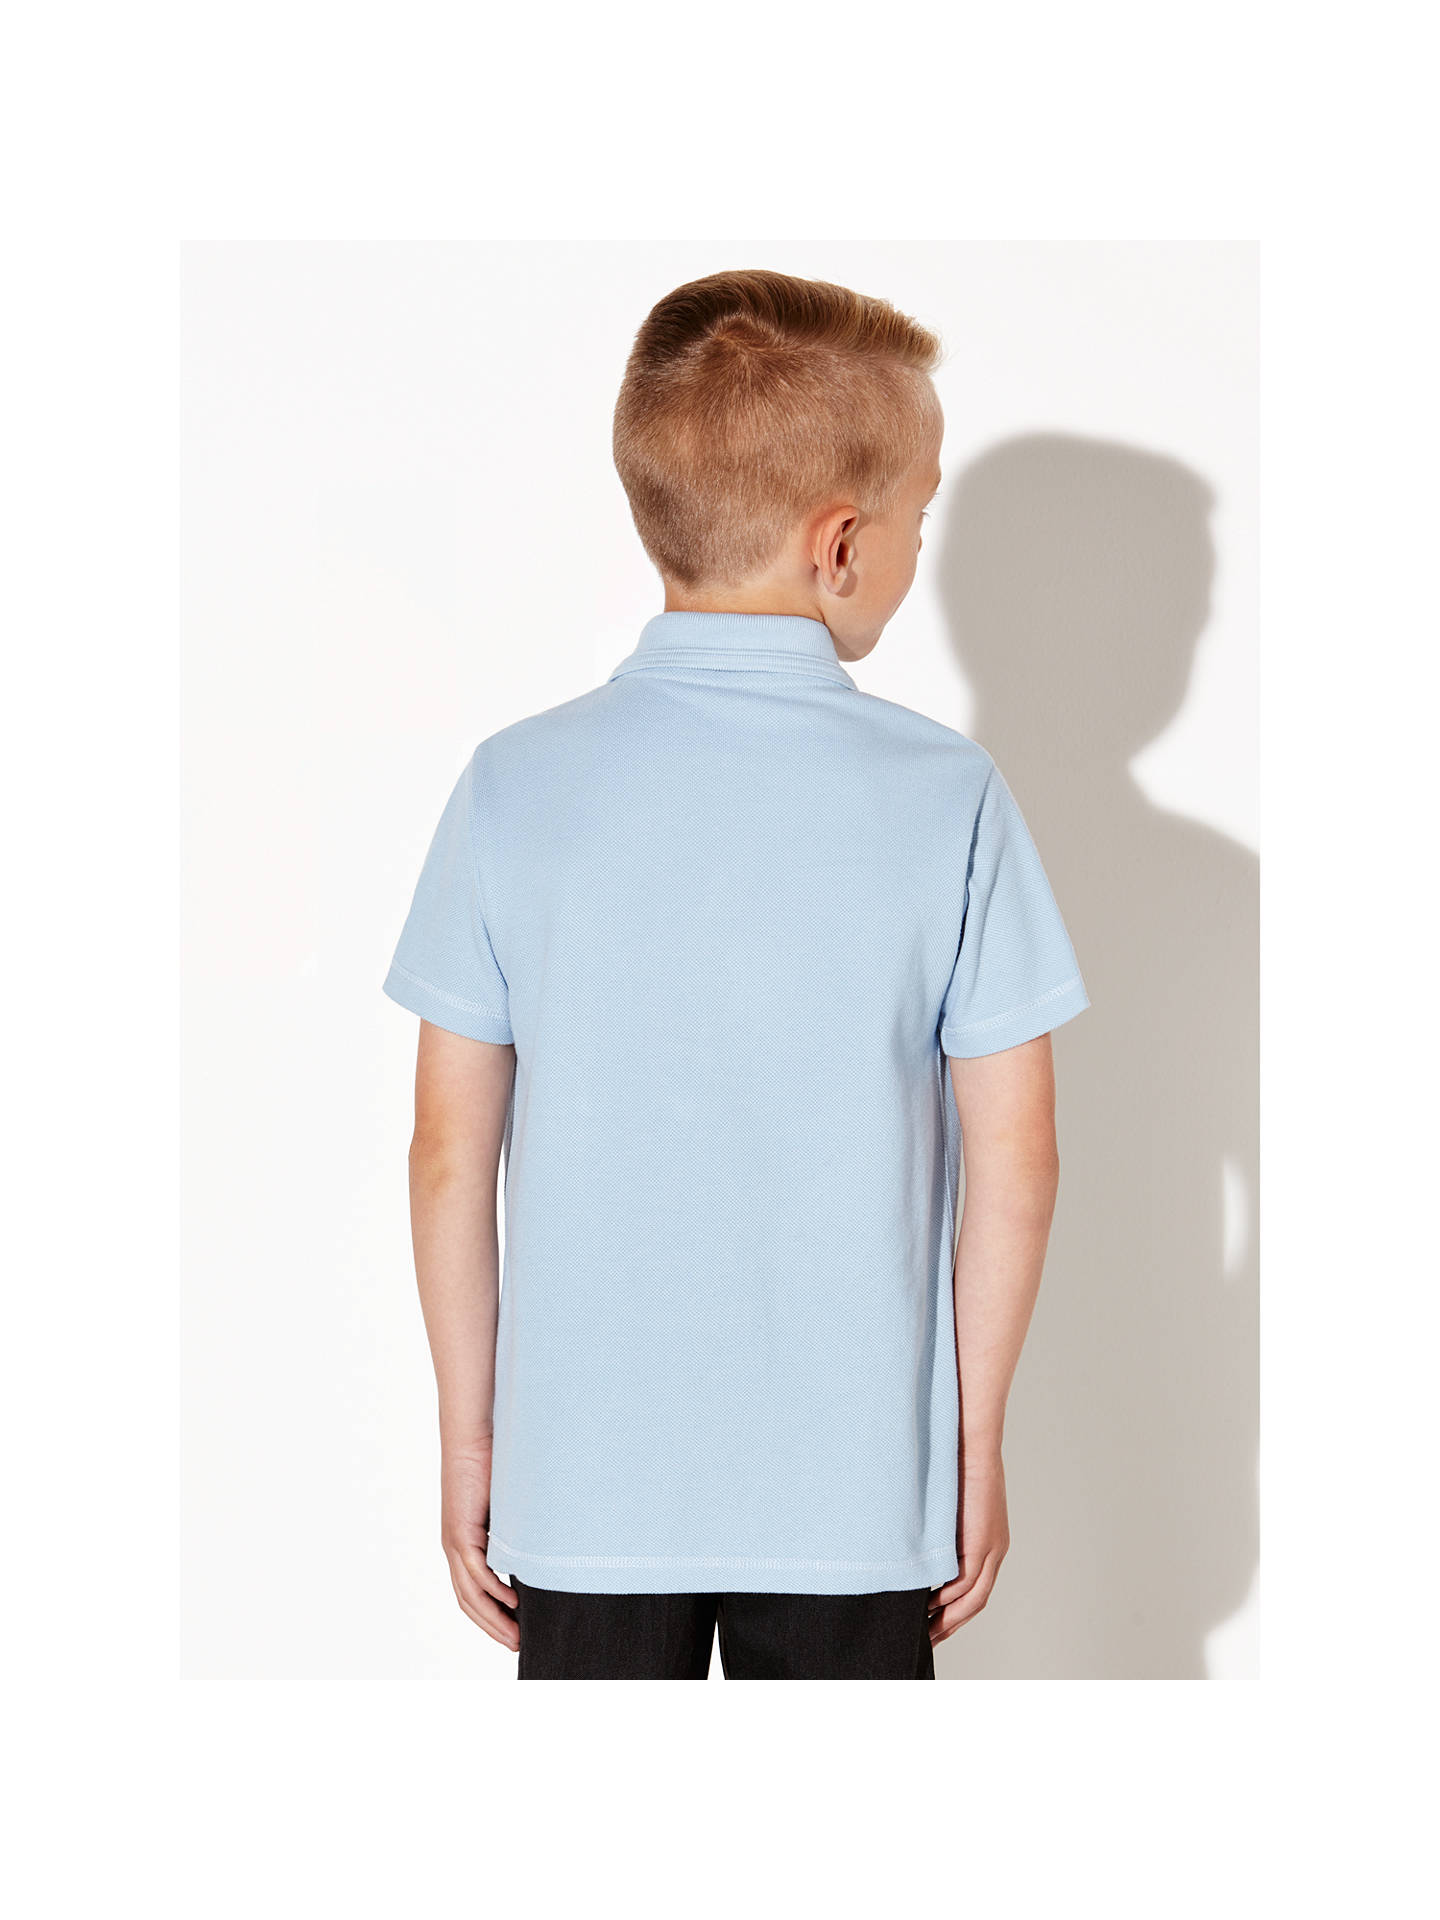 BuyJohn Lewis & Partners Unisex Pure Cotton Easy Care School Polo Shirt, Pack of 2, Blue, 3 years Online at johnlewis.com